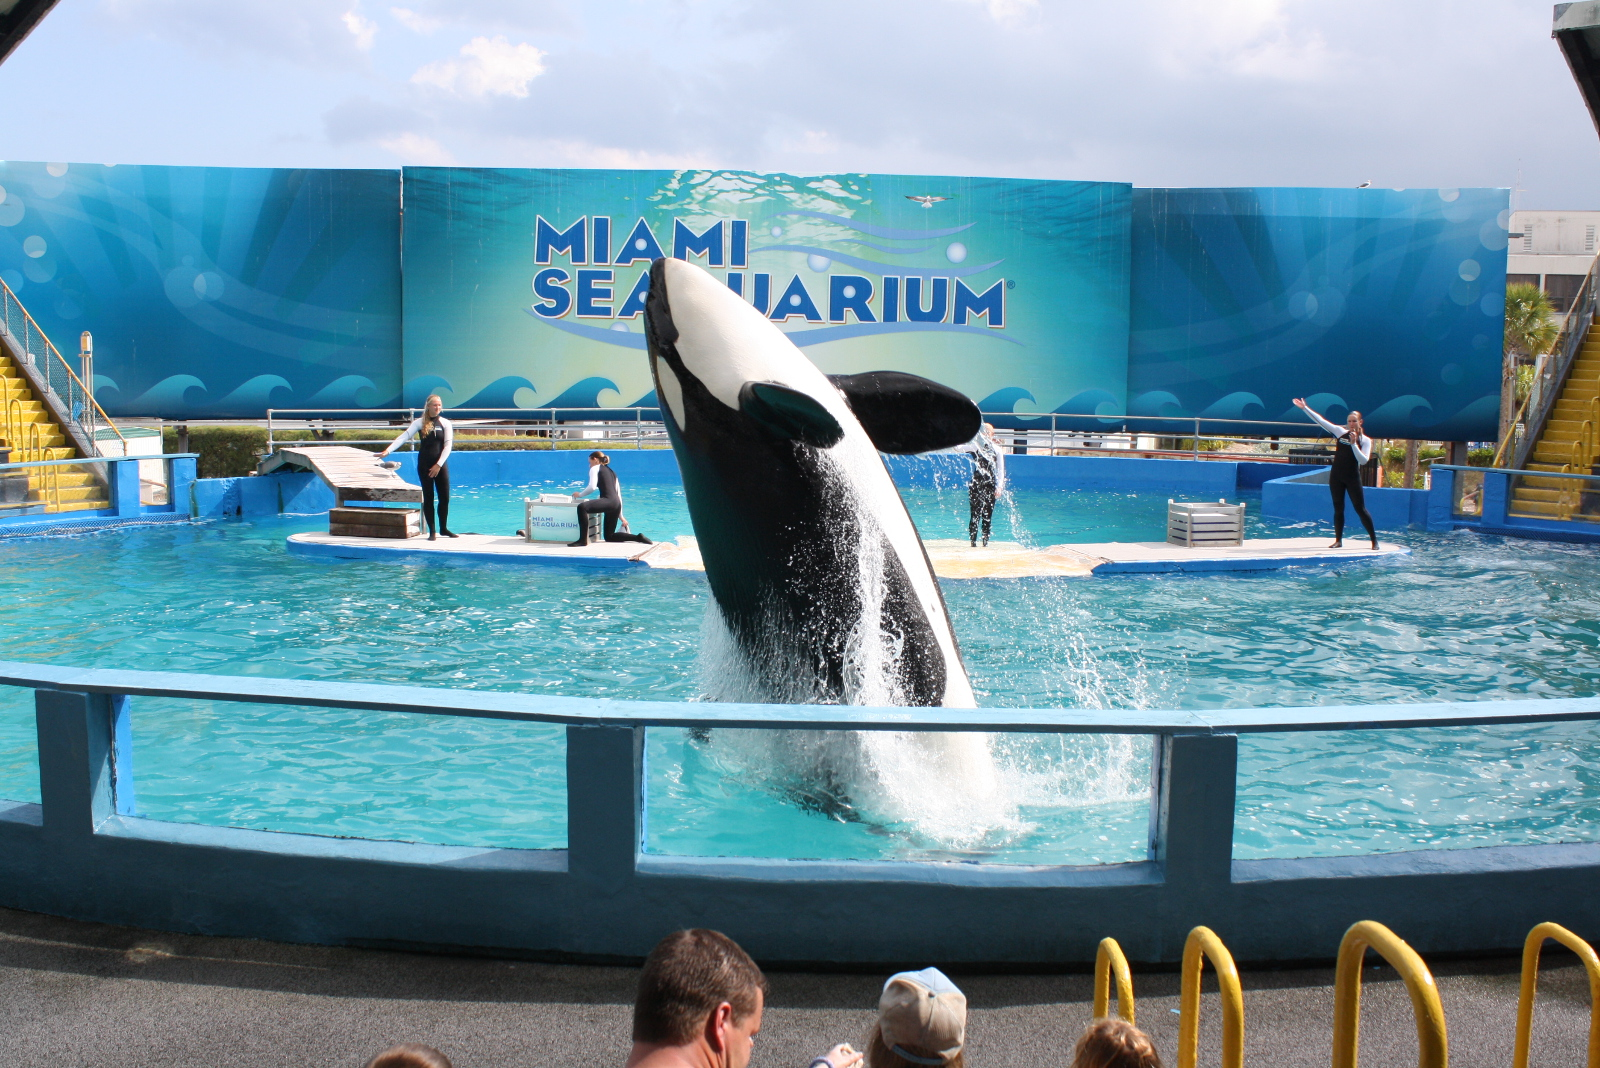 After 44 Years of Pain and Suffering in Captivity, is There Hope for Lolita?